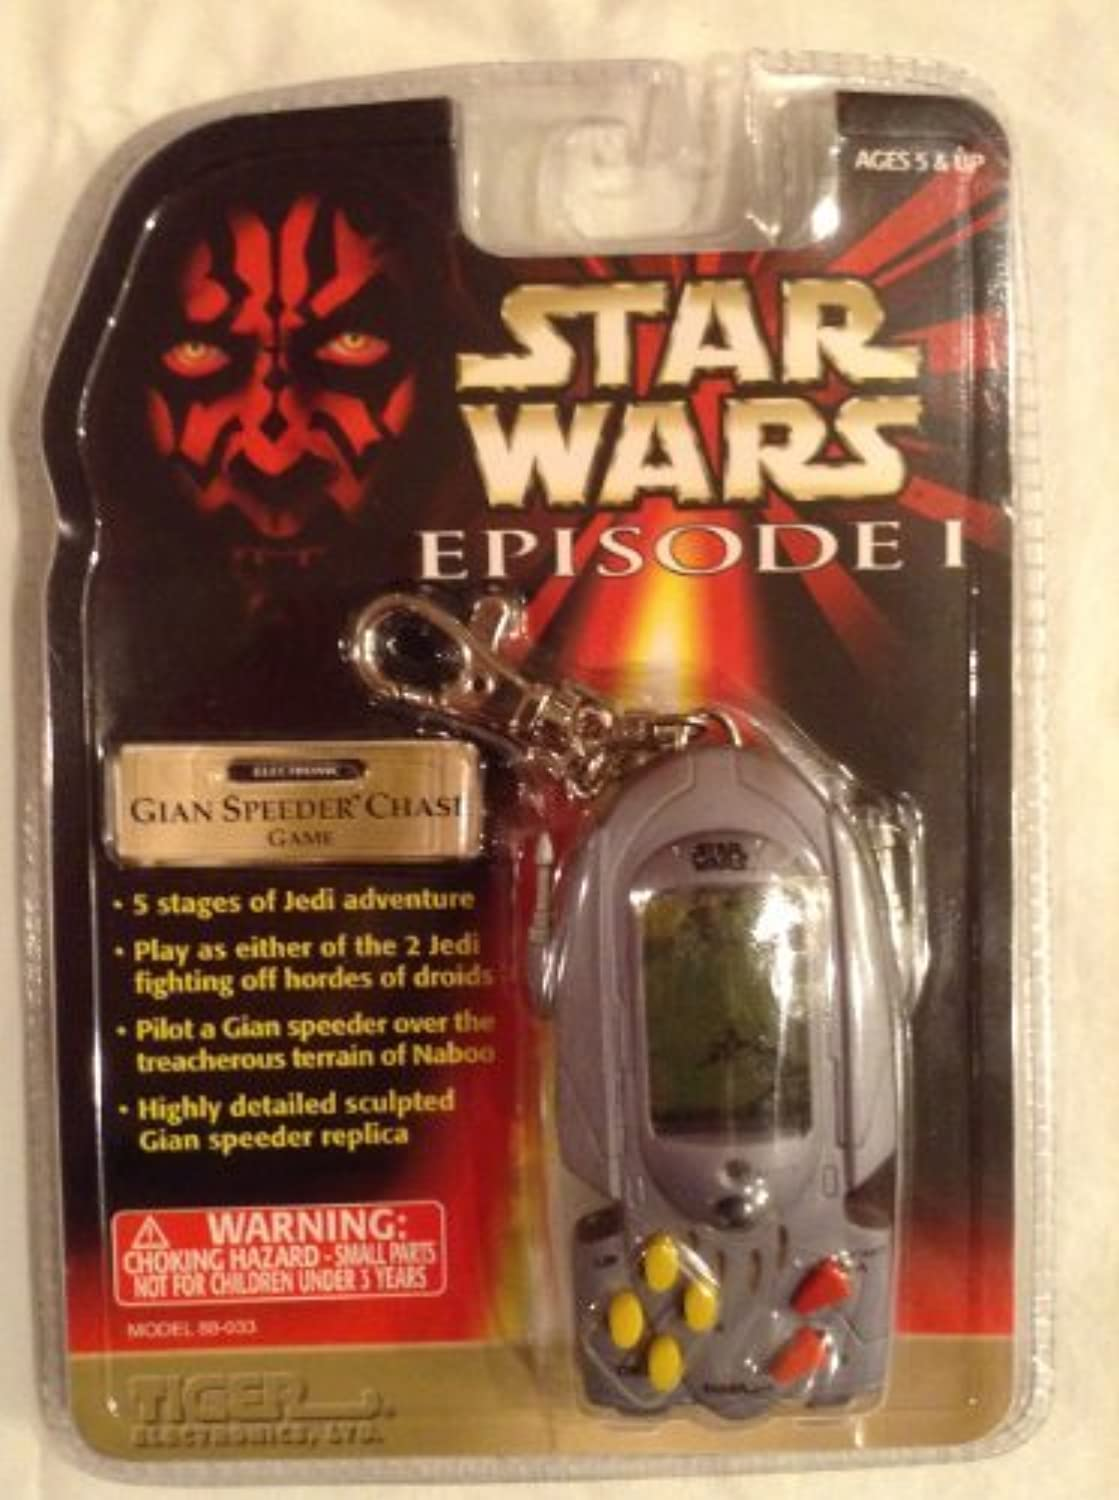 Star Wars Episode I Extreme Chain Games: Gian Speeder Chase by Tiger Electronics [並行輸入品]